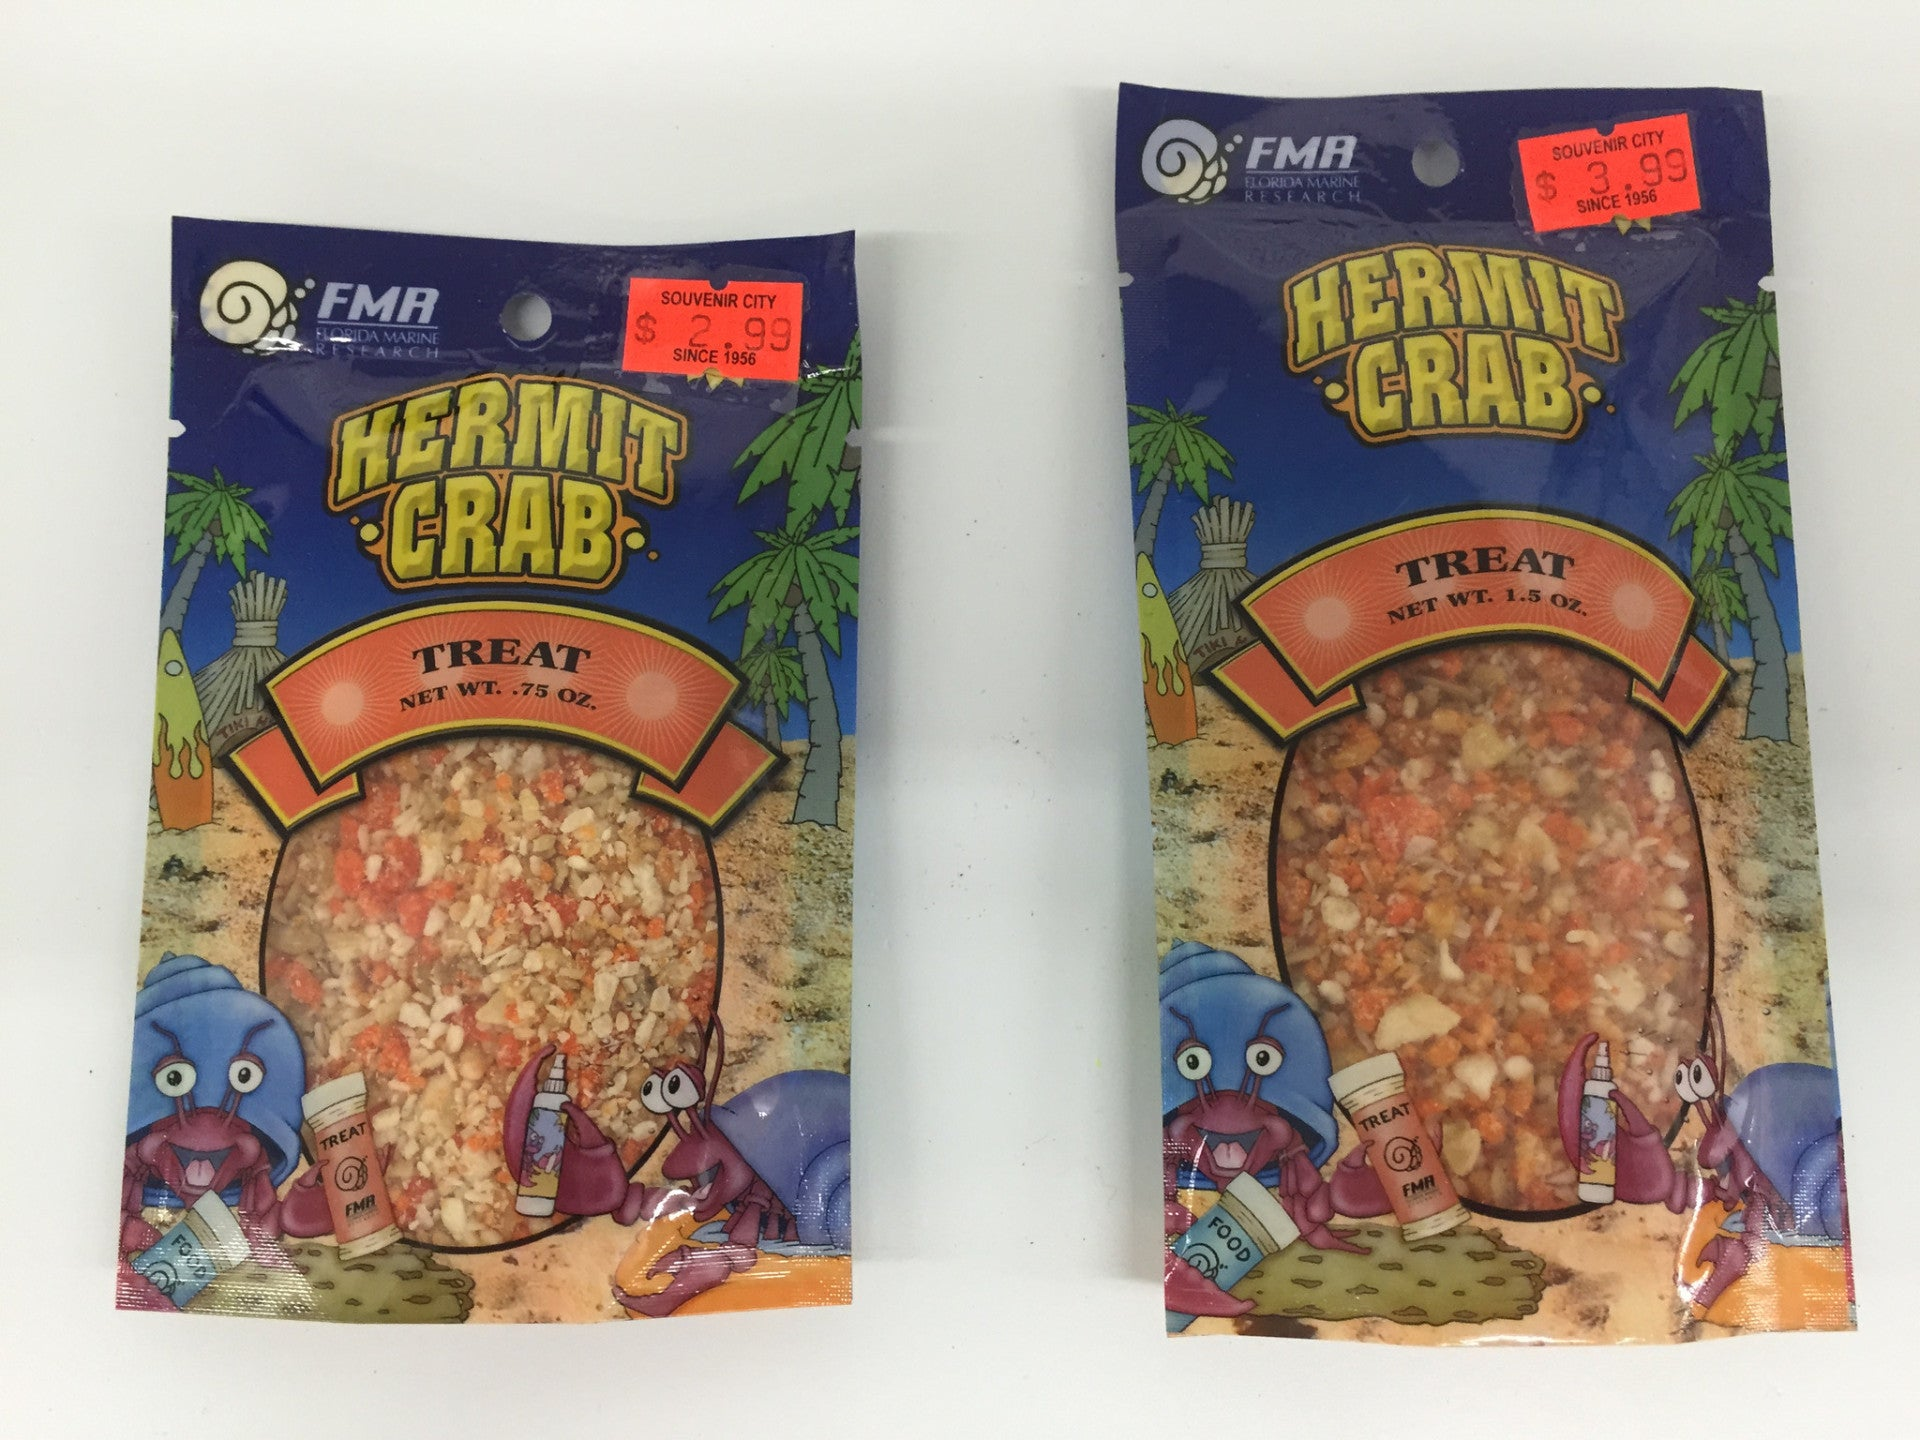 Hermit Crab Treat